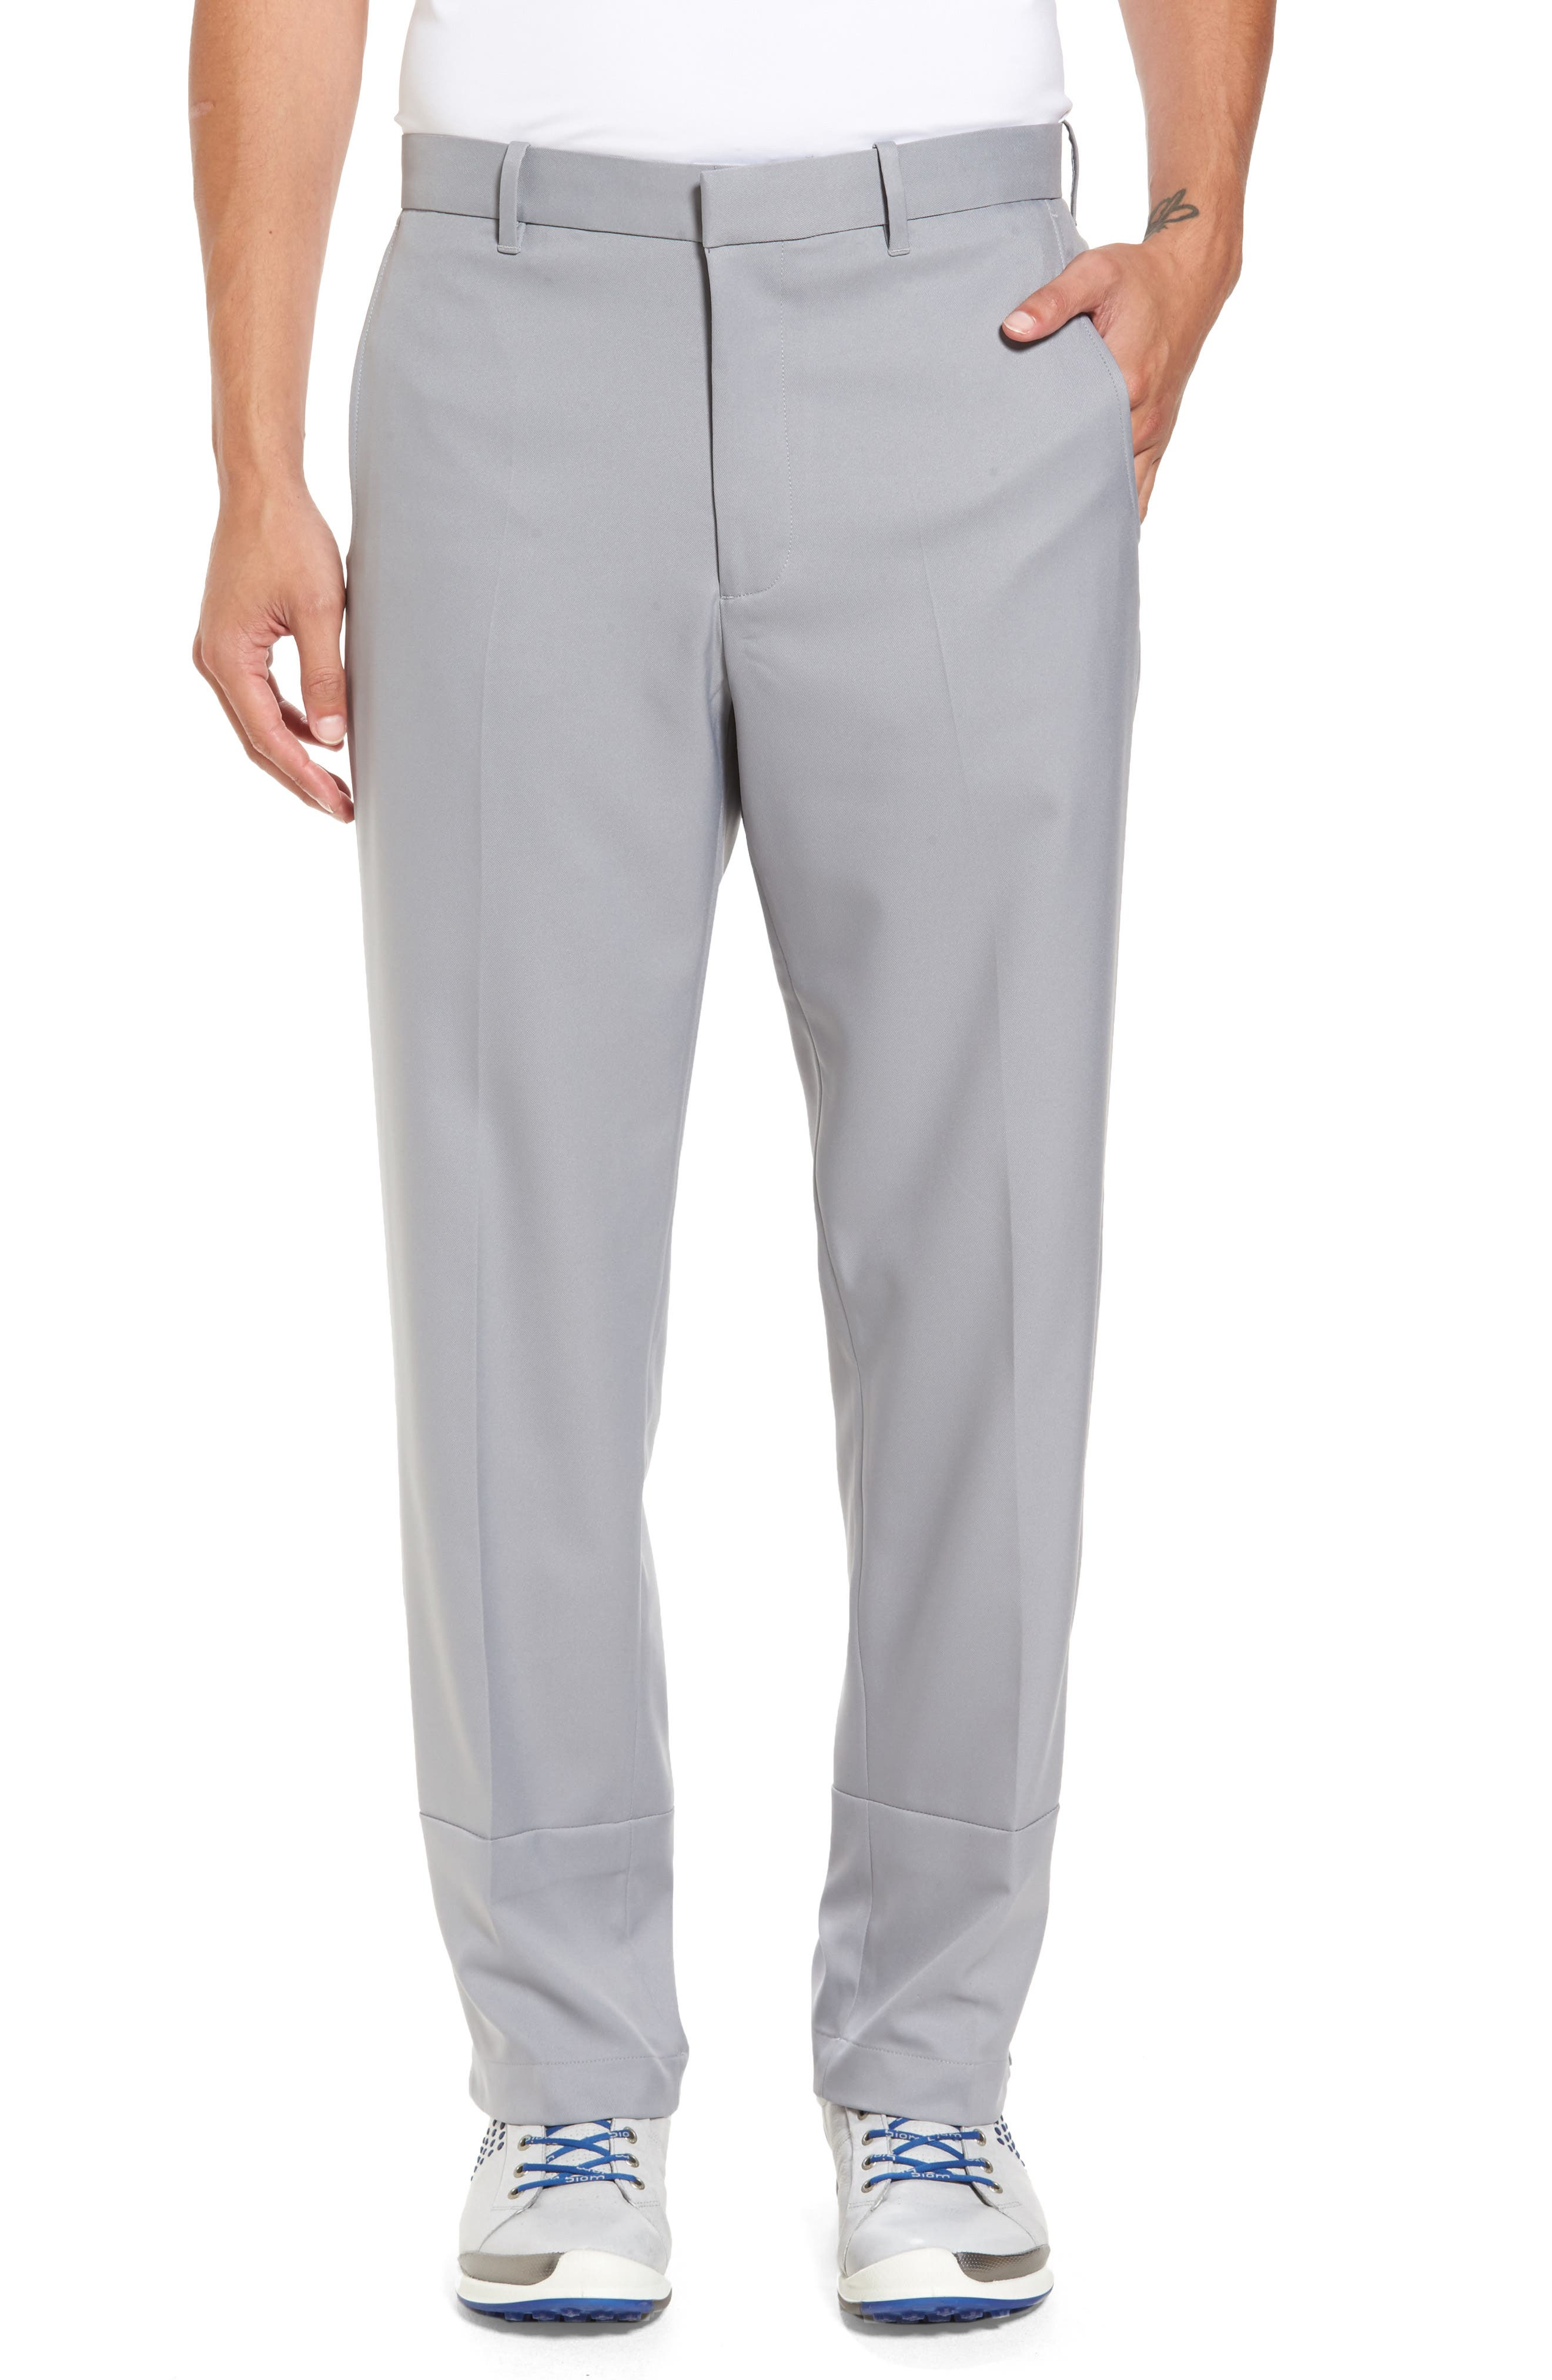 'Tech' Flat Front Wrinkle Free Golf Pants,                             Main thumbnail 1, color,                             052